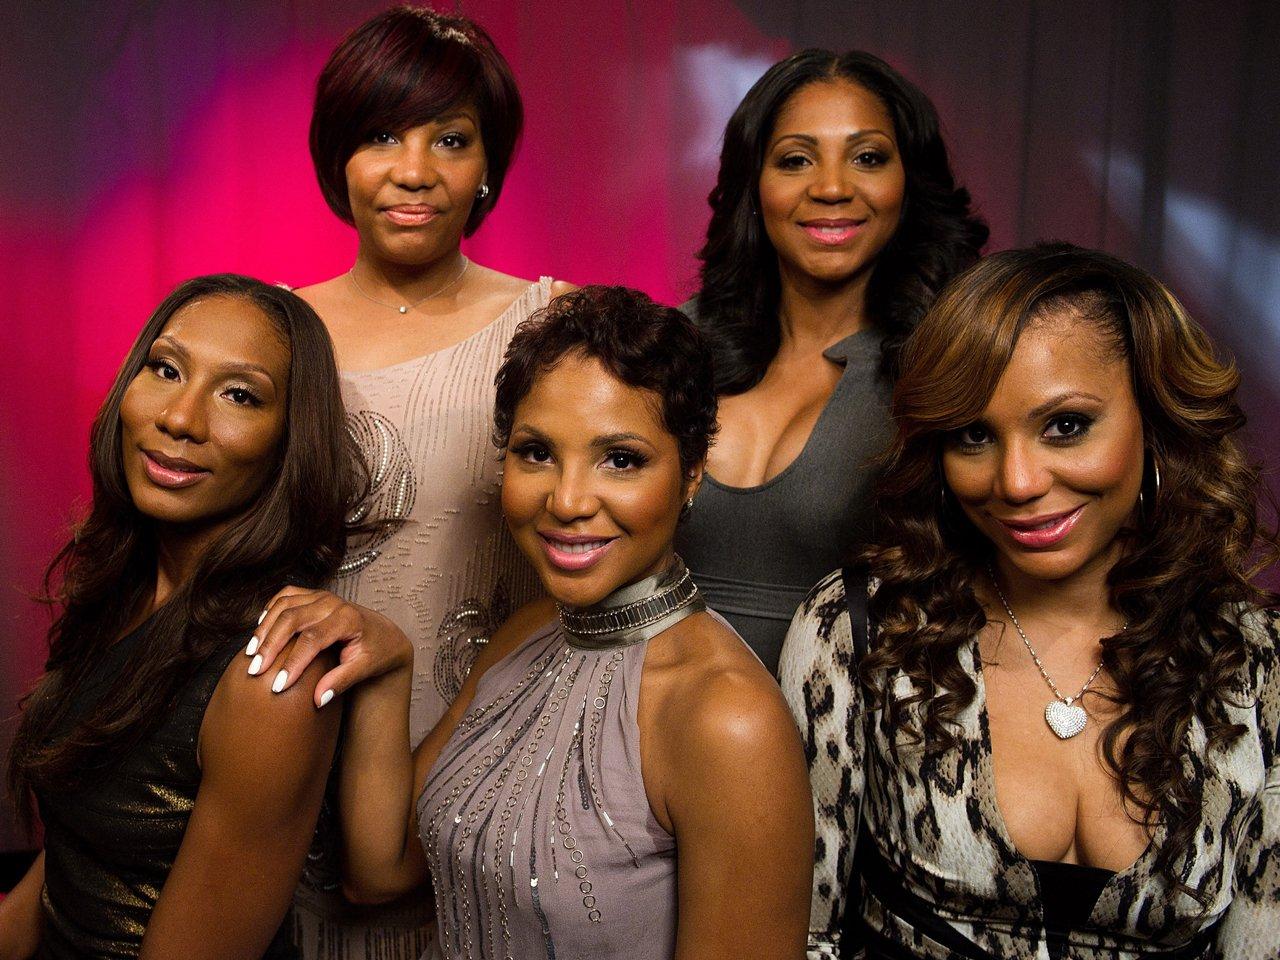 Toni Braxton Wishes Her Sister, Towanda Braxton A Happy Birthday